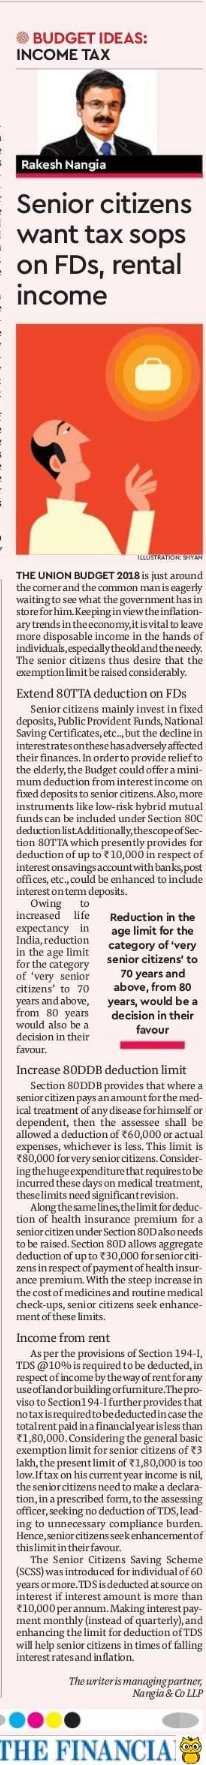 Senior citizens want tax sops on FDs, rental income